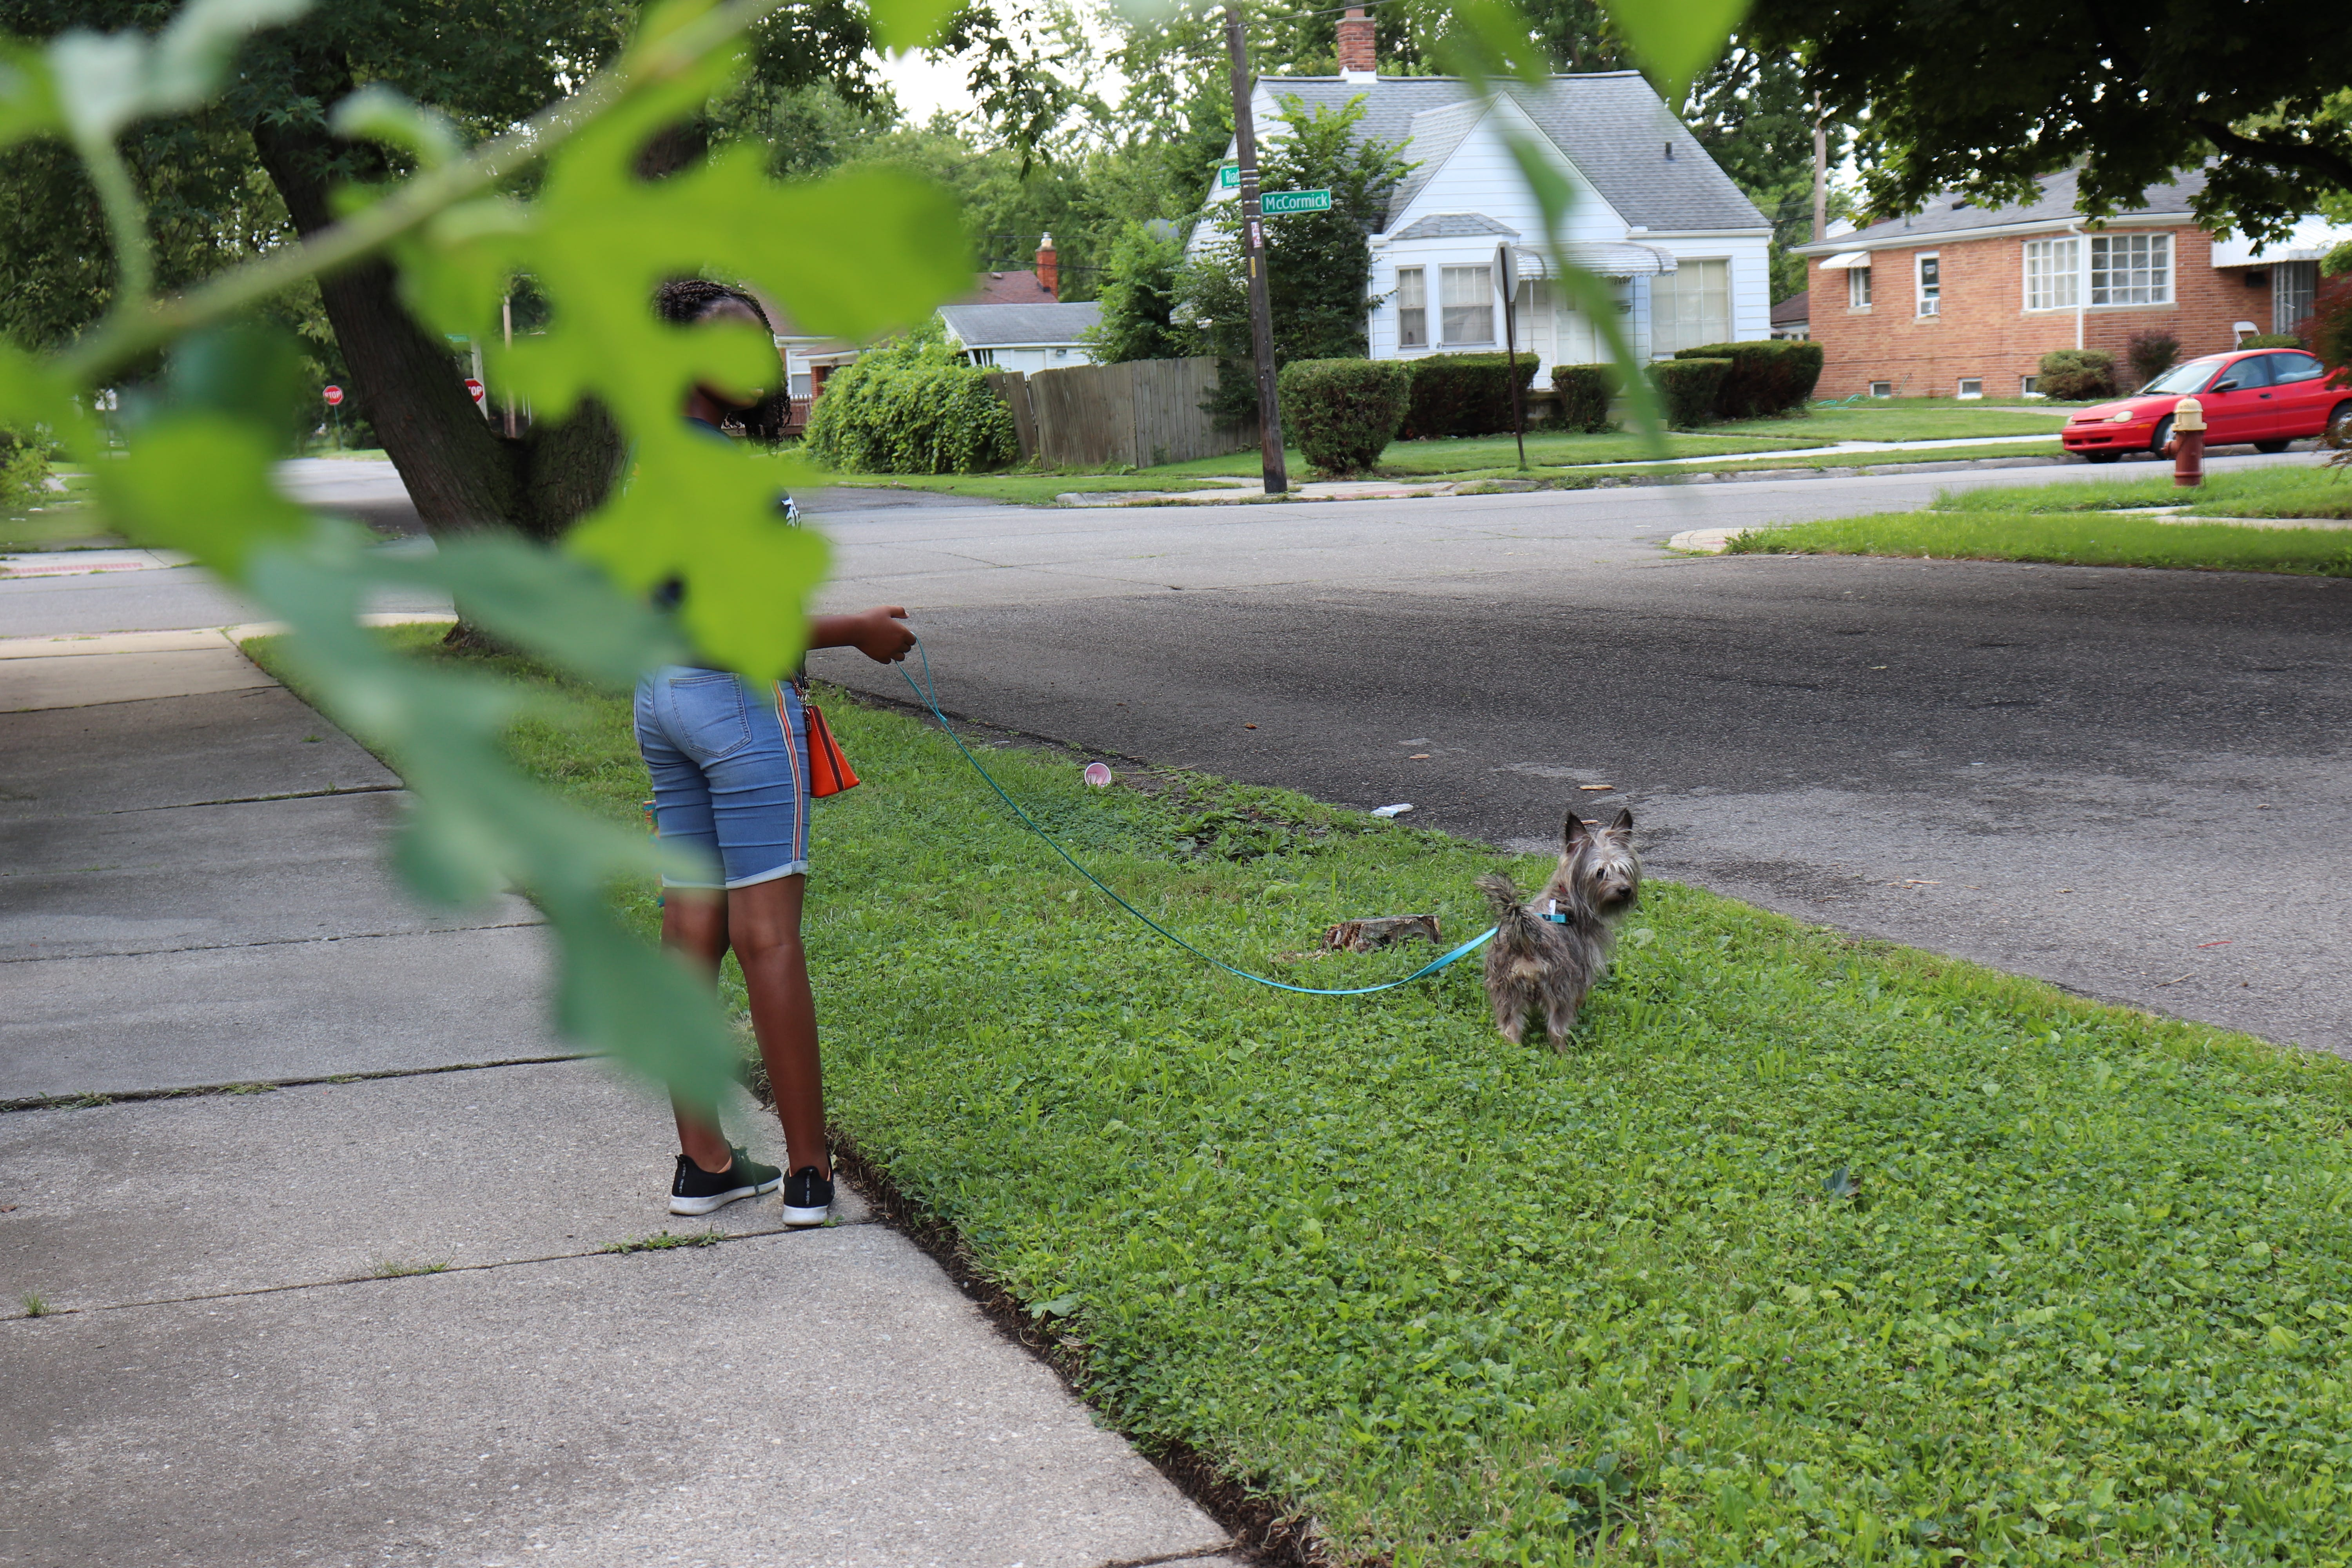 Our dog Jet was whining so my sister, Rahmani, 13, and I took him for a walk outside our home in Detroit. I was drawn to the leaf in the foreground so I decided to add it into the picture. When my dog turned to the camera as if he knew I was taking a picture, it made the moment even more special.